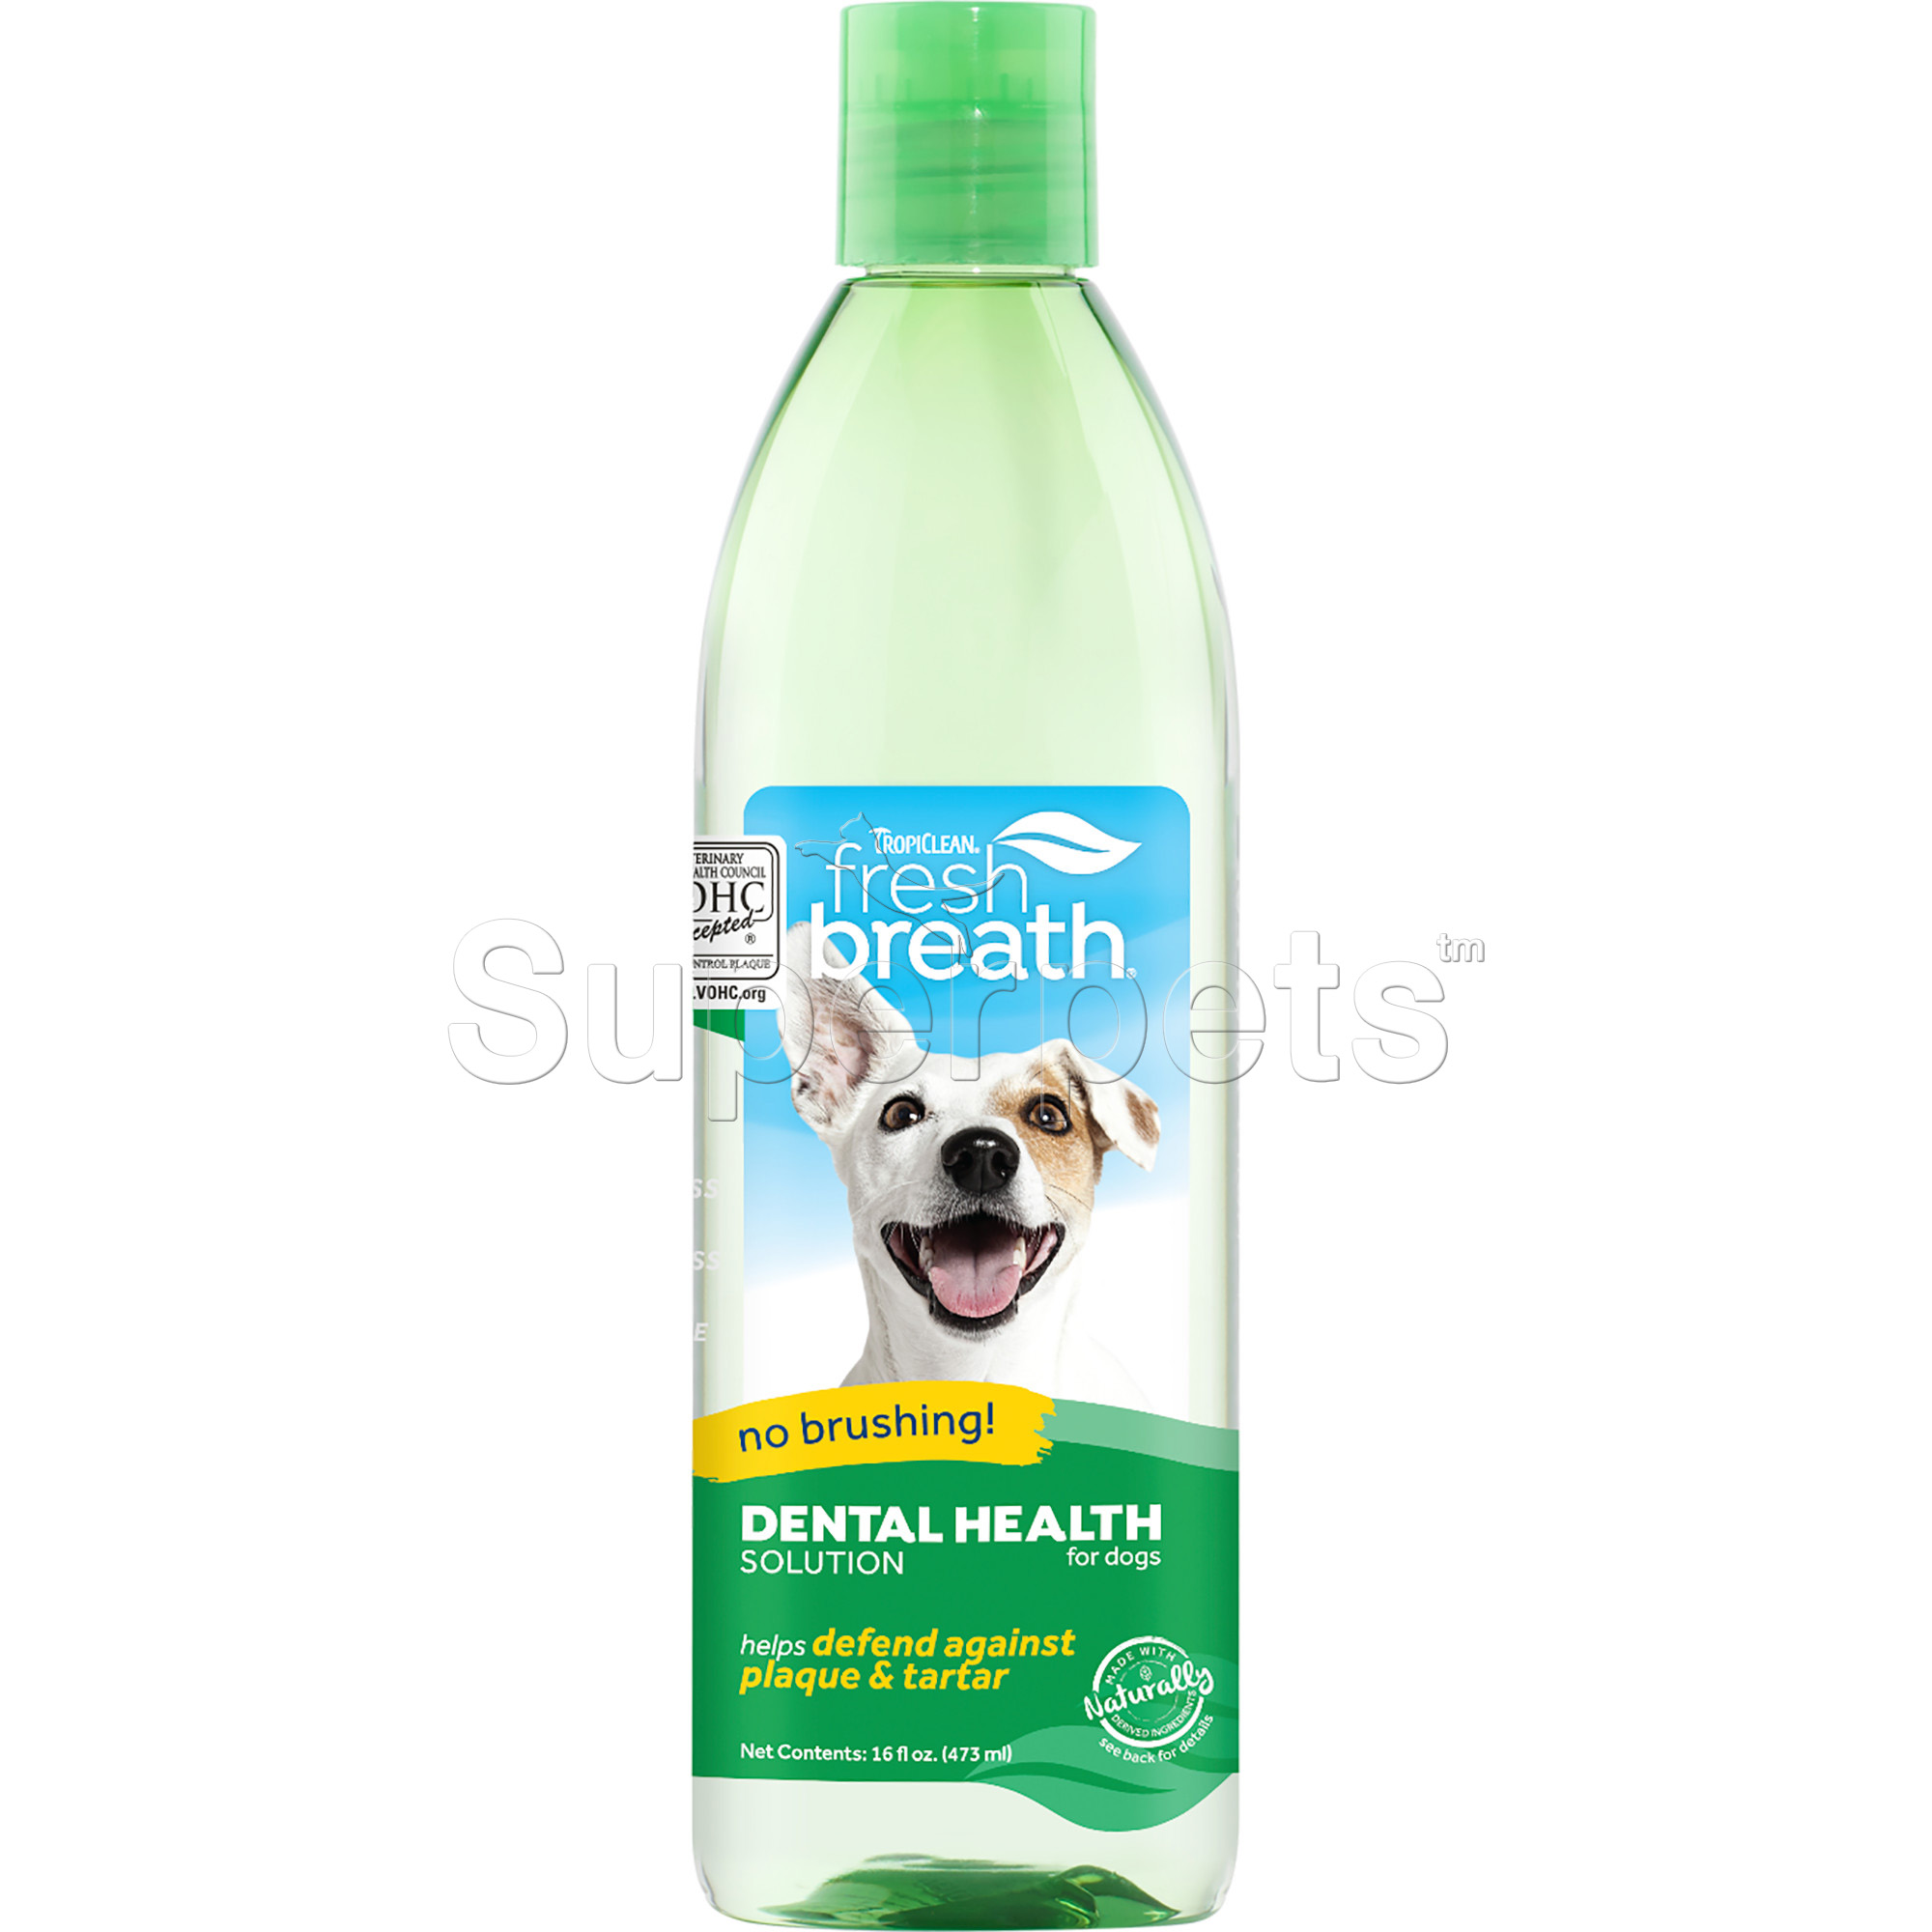 Tropiclean FRESH BREATH Oral Care Water Additive for Dogs & Cats - Plaque & Tartar Remover 16oz (473ml)